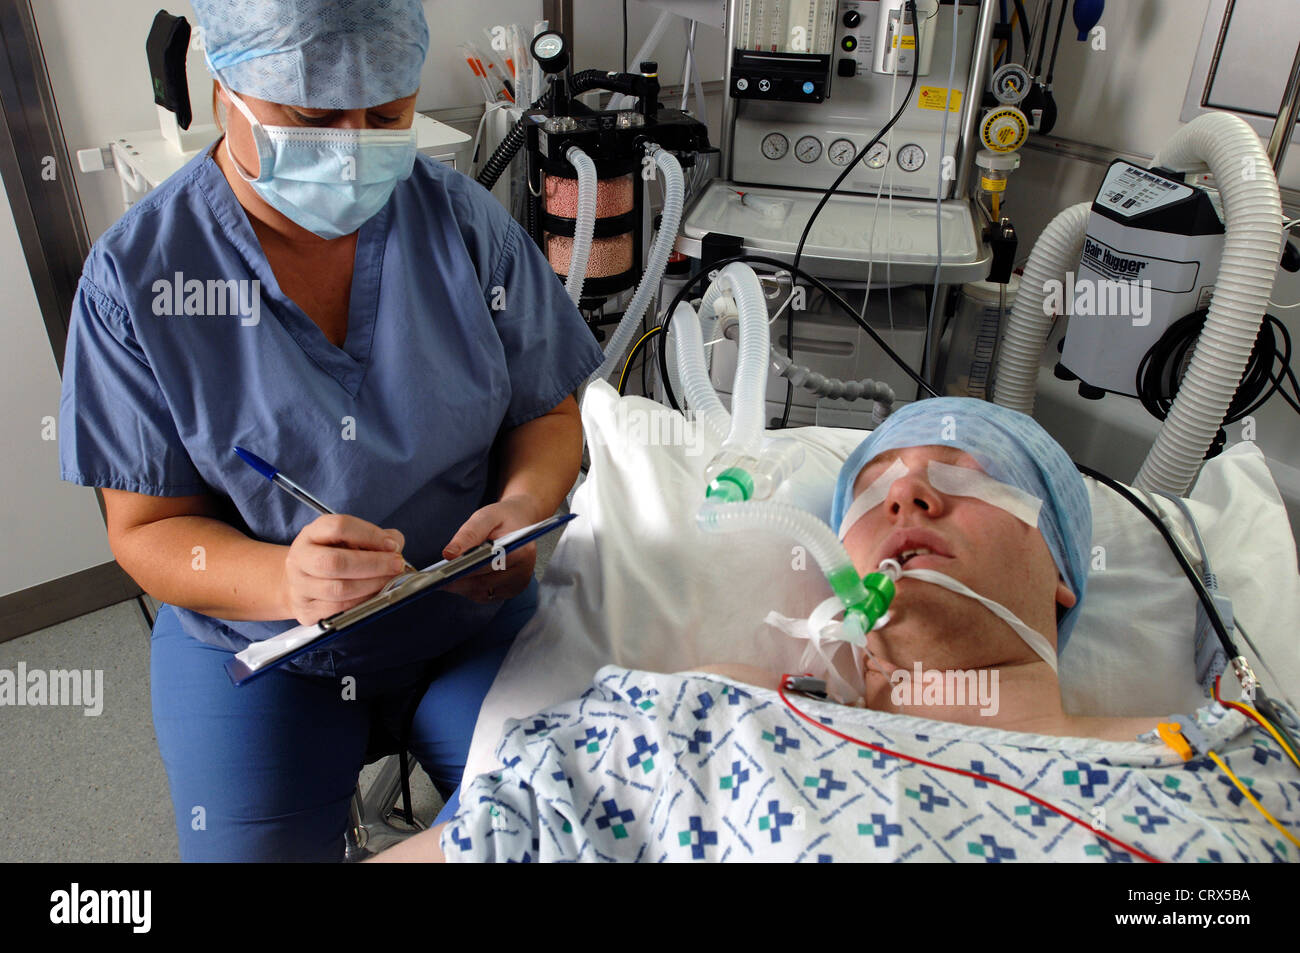 With his eyes taped, a male patient is being watched over by an anesthetist during an operation. Stock Photo